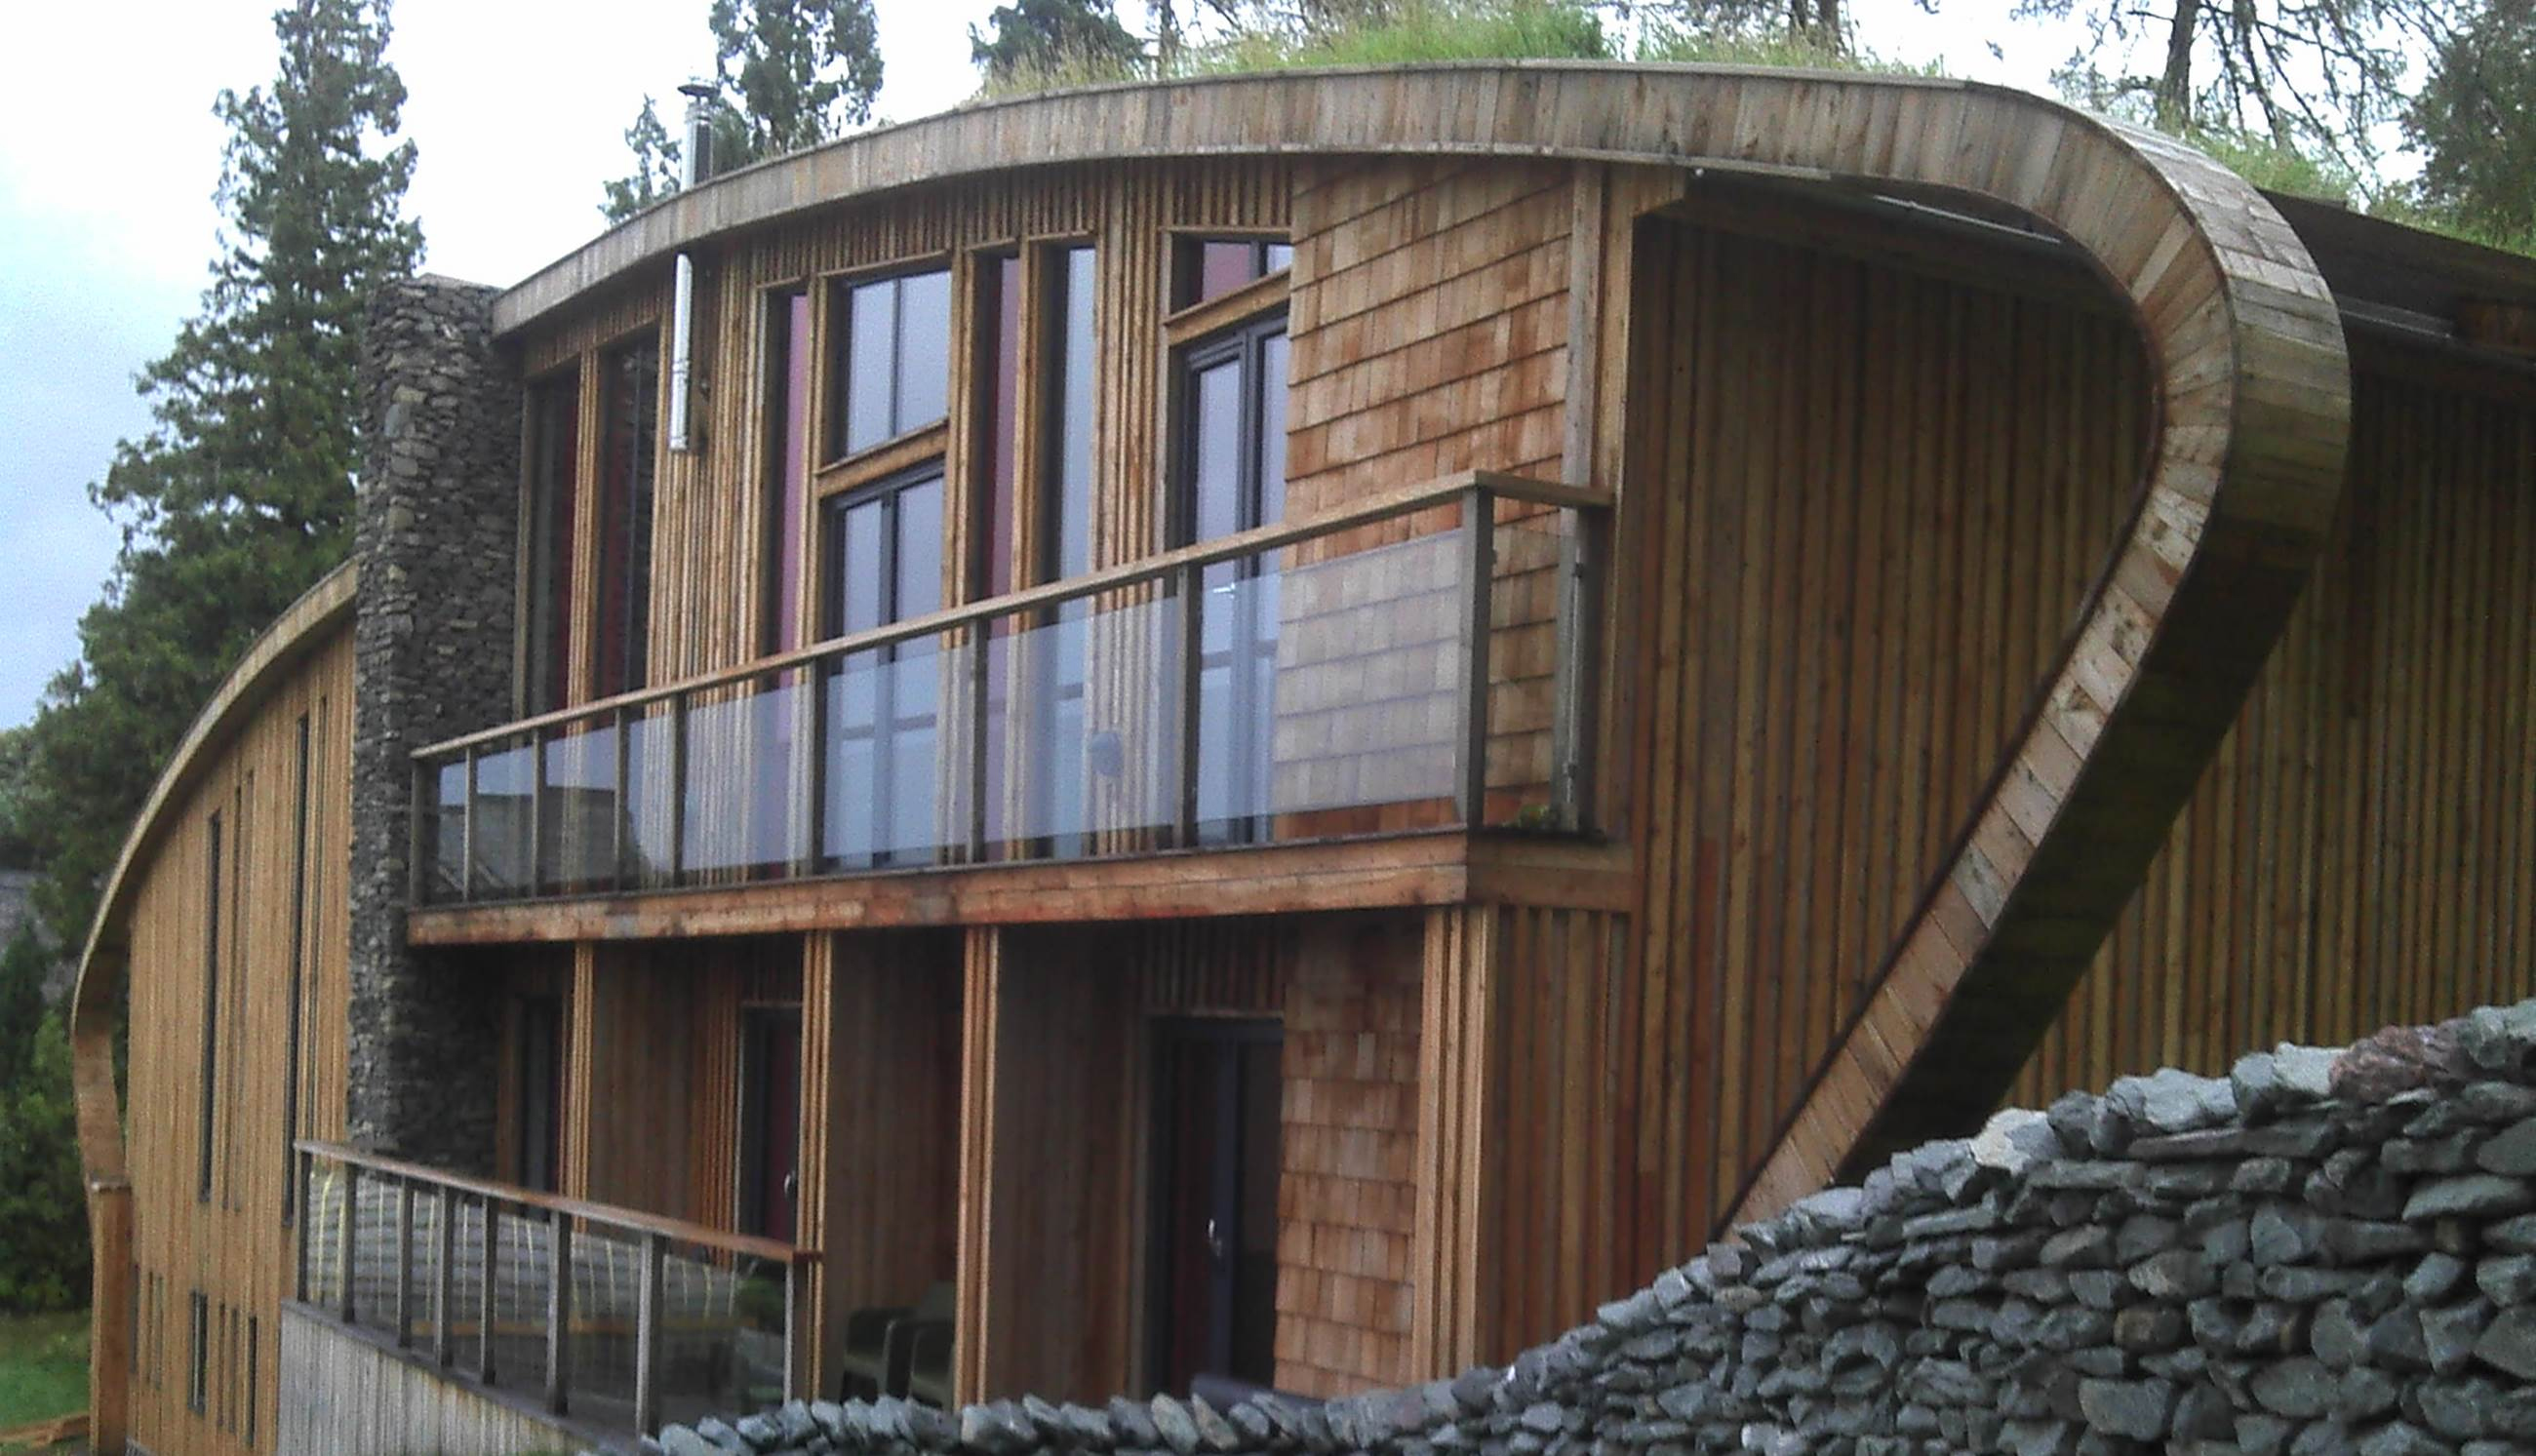 The Protec system waterproofs Grand Designs development